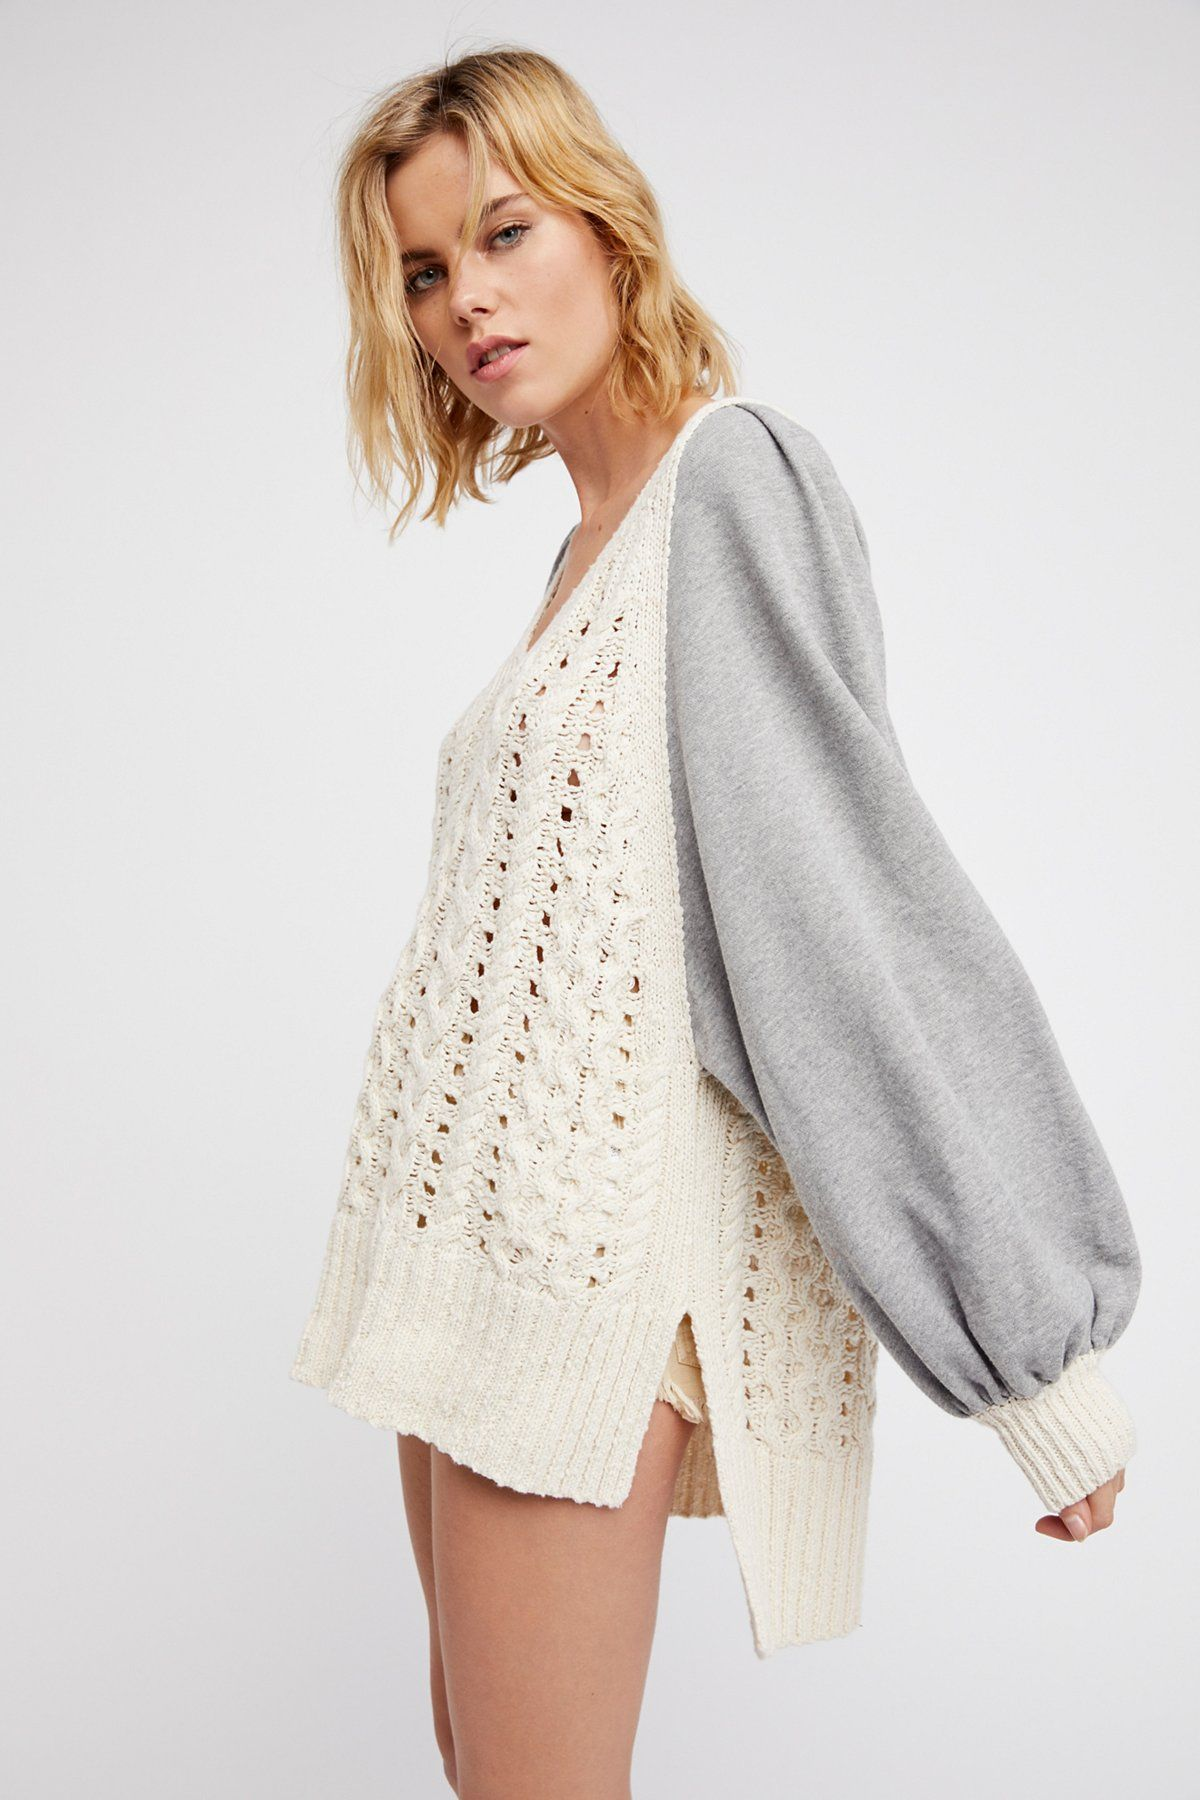 HIdeaway Cable Pullover | Oversized and effortless, this pullover ...